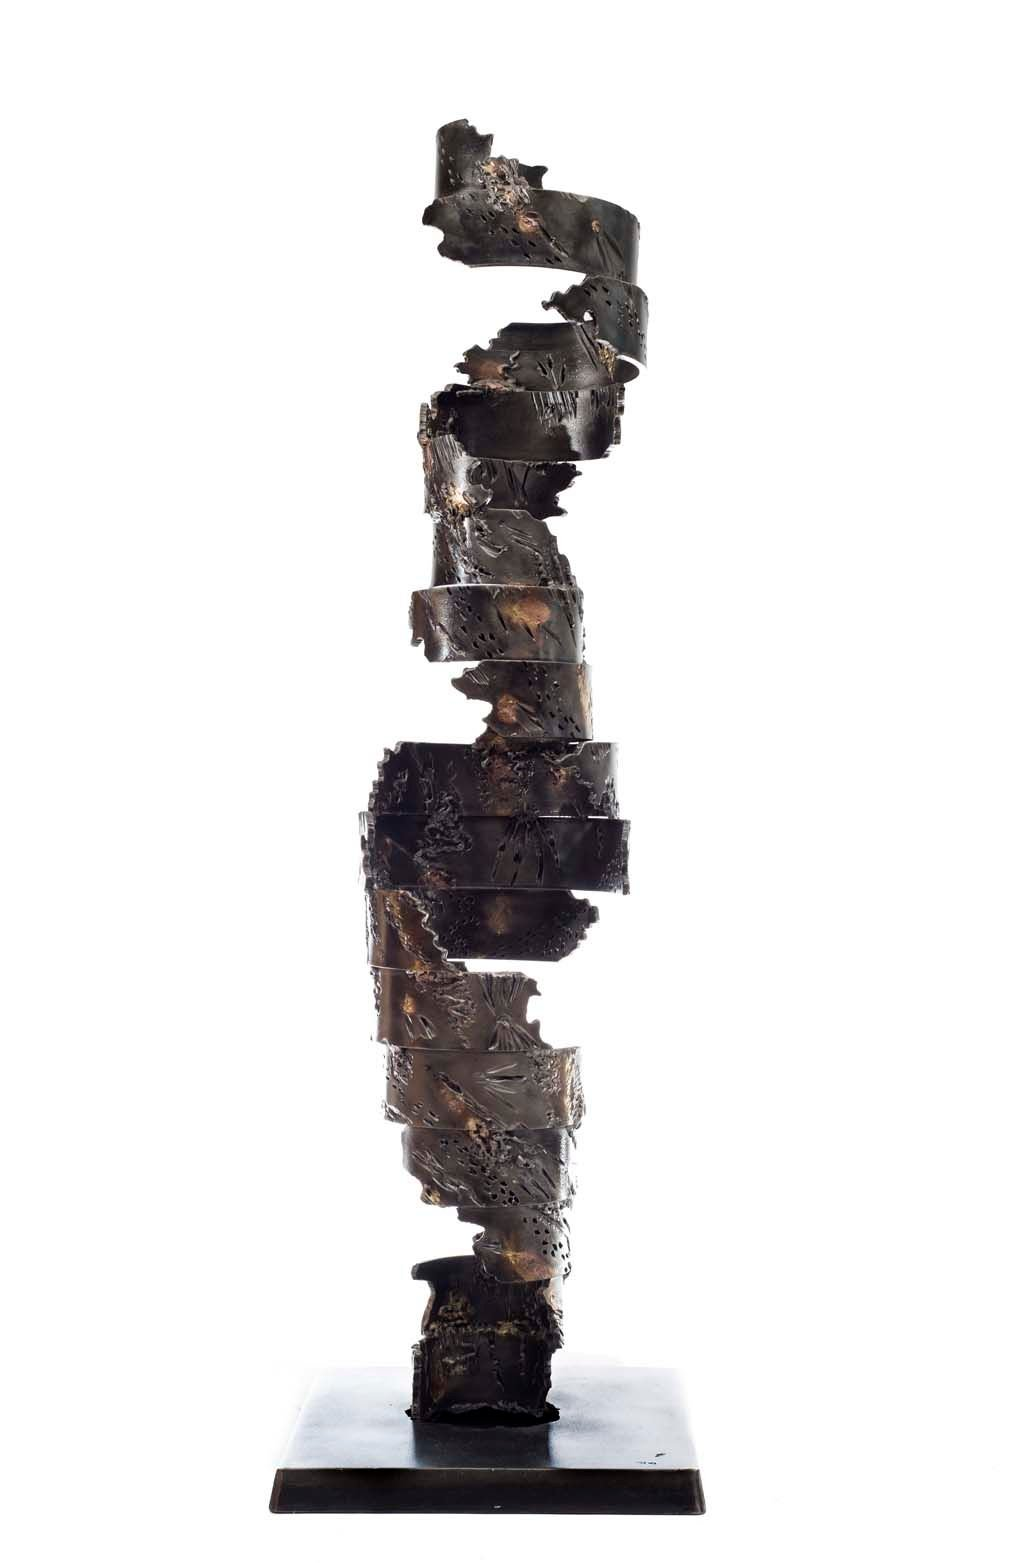 Insights V | 2013 | Iron & brass sculpture | 148x40x40 cm | Rami Ater